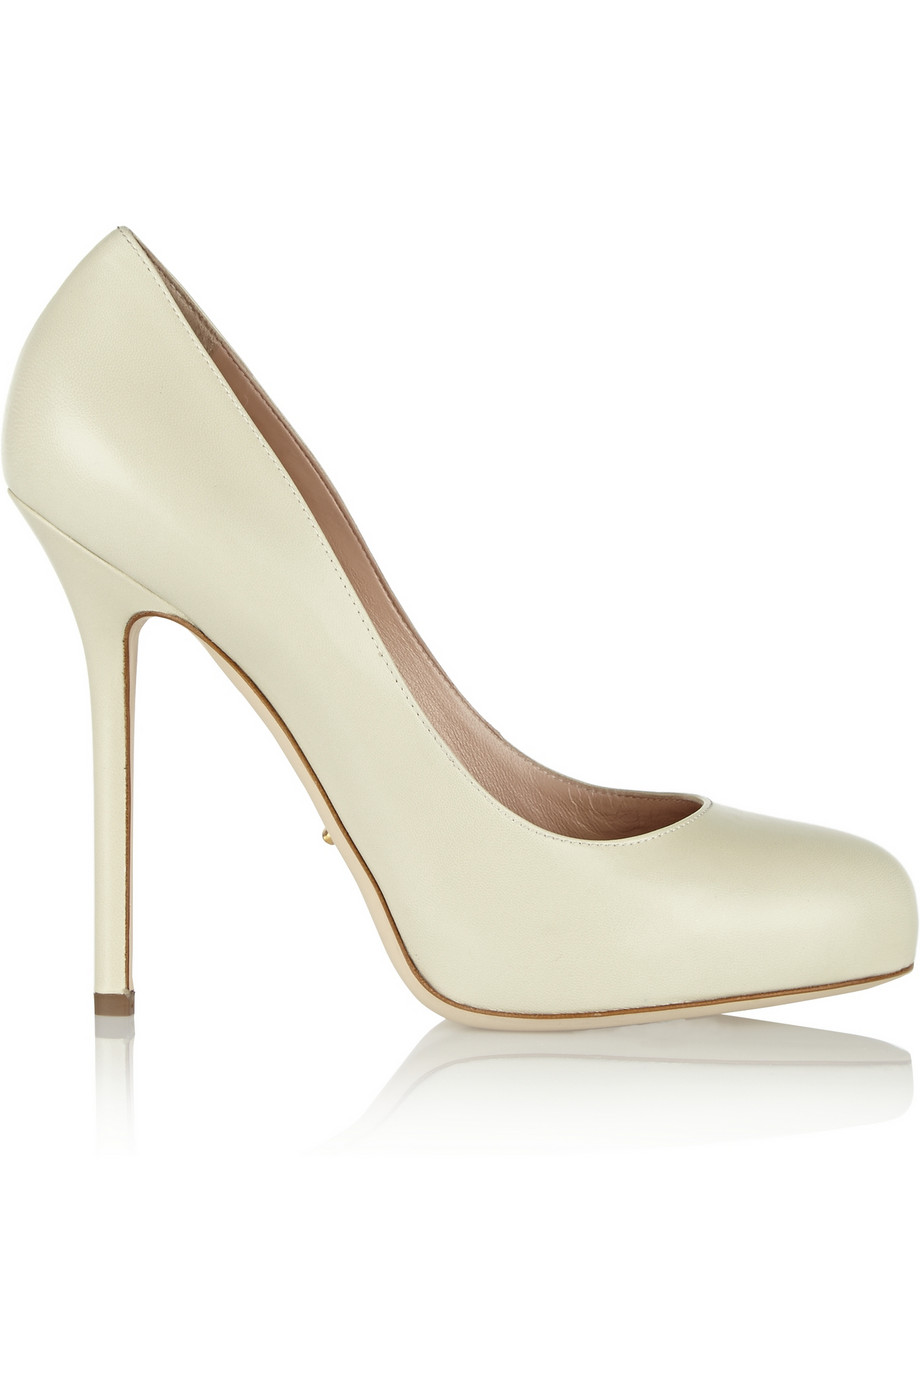 Sergio Rossi Barbie Leather Pumps $297.50